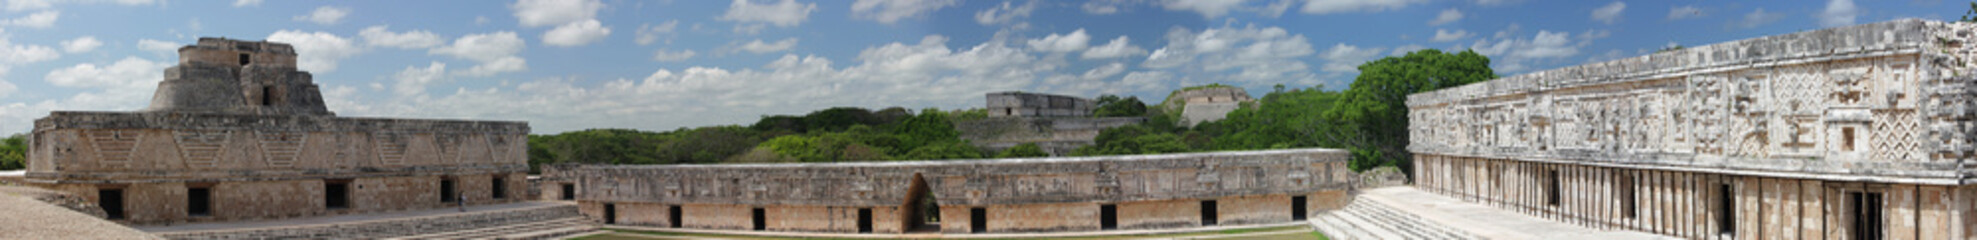 nunnery quadrangle uxmal